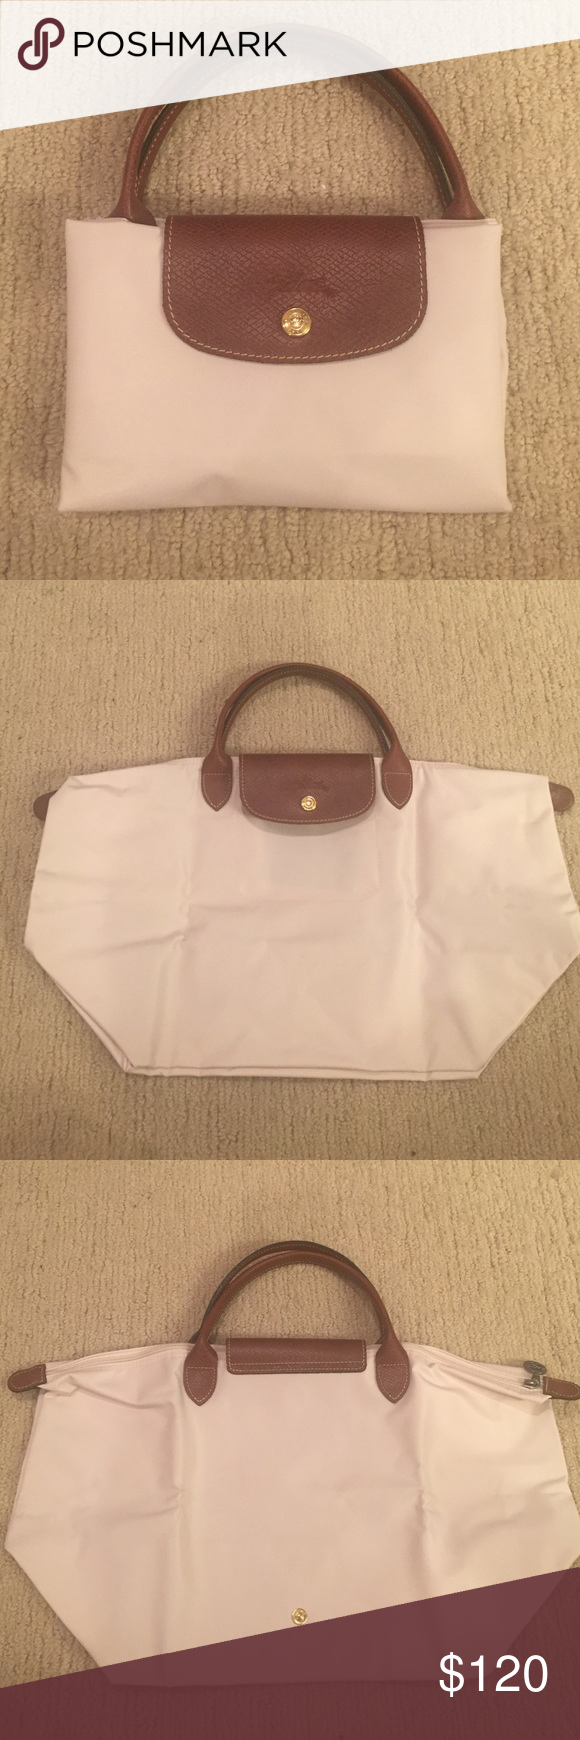 Longchamp Tote *BRAND NEW* Creme colored Longchamp tote. Tags removed, but never used. Longchamp Bags Totes